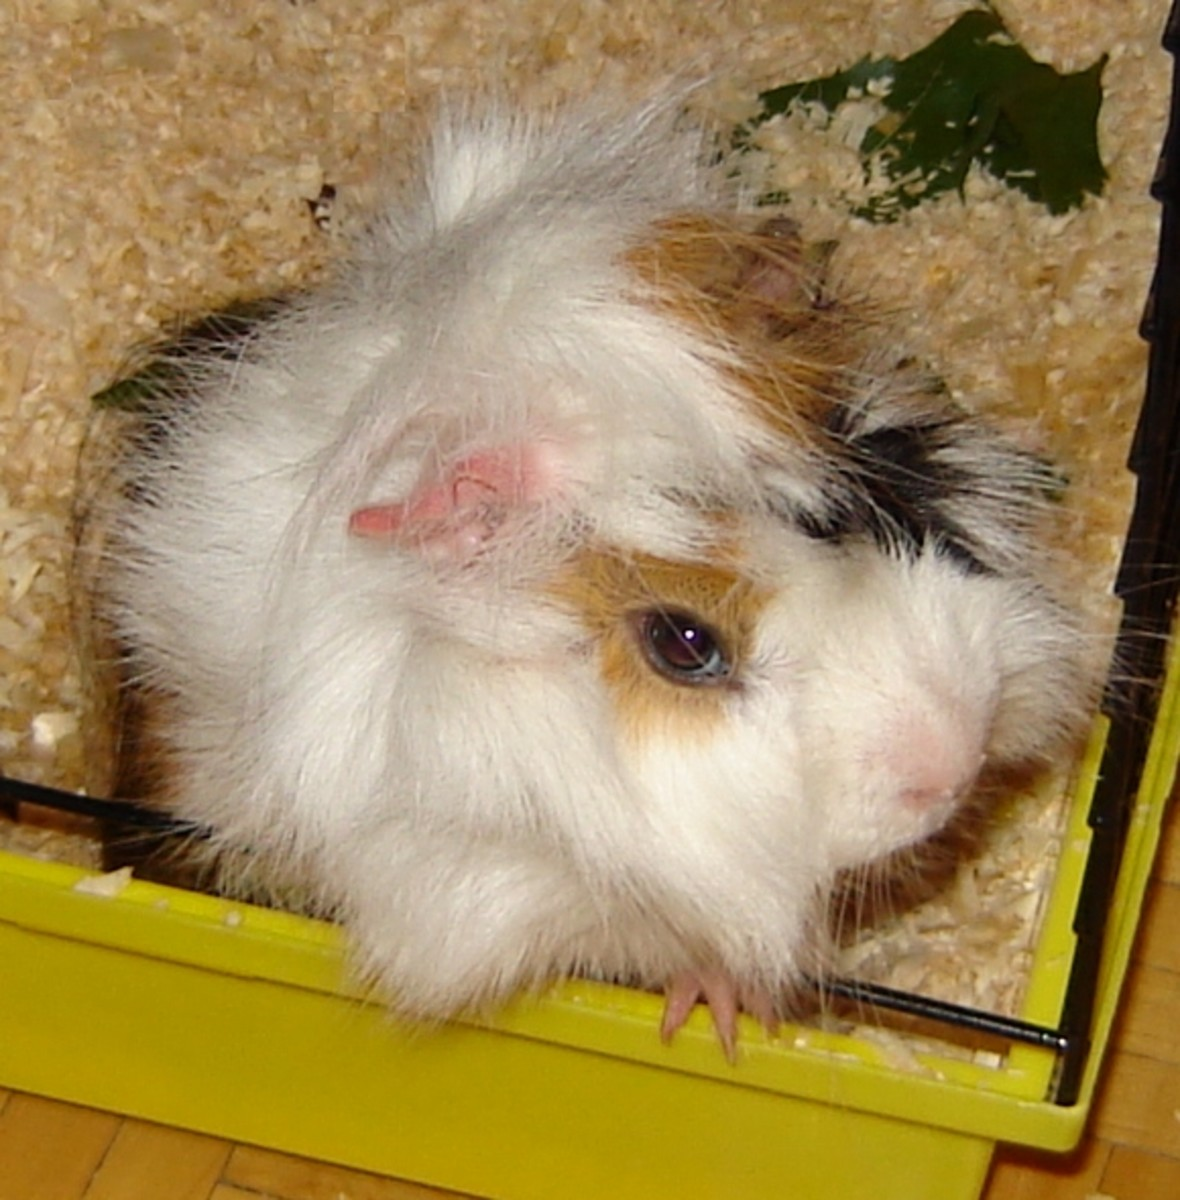 Guinea Pig on Wood Shavings